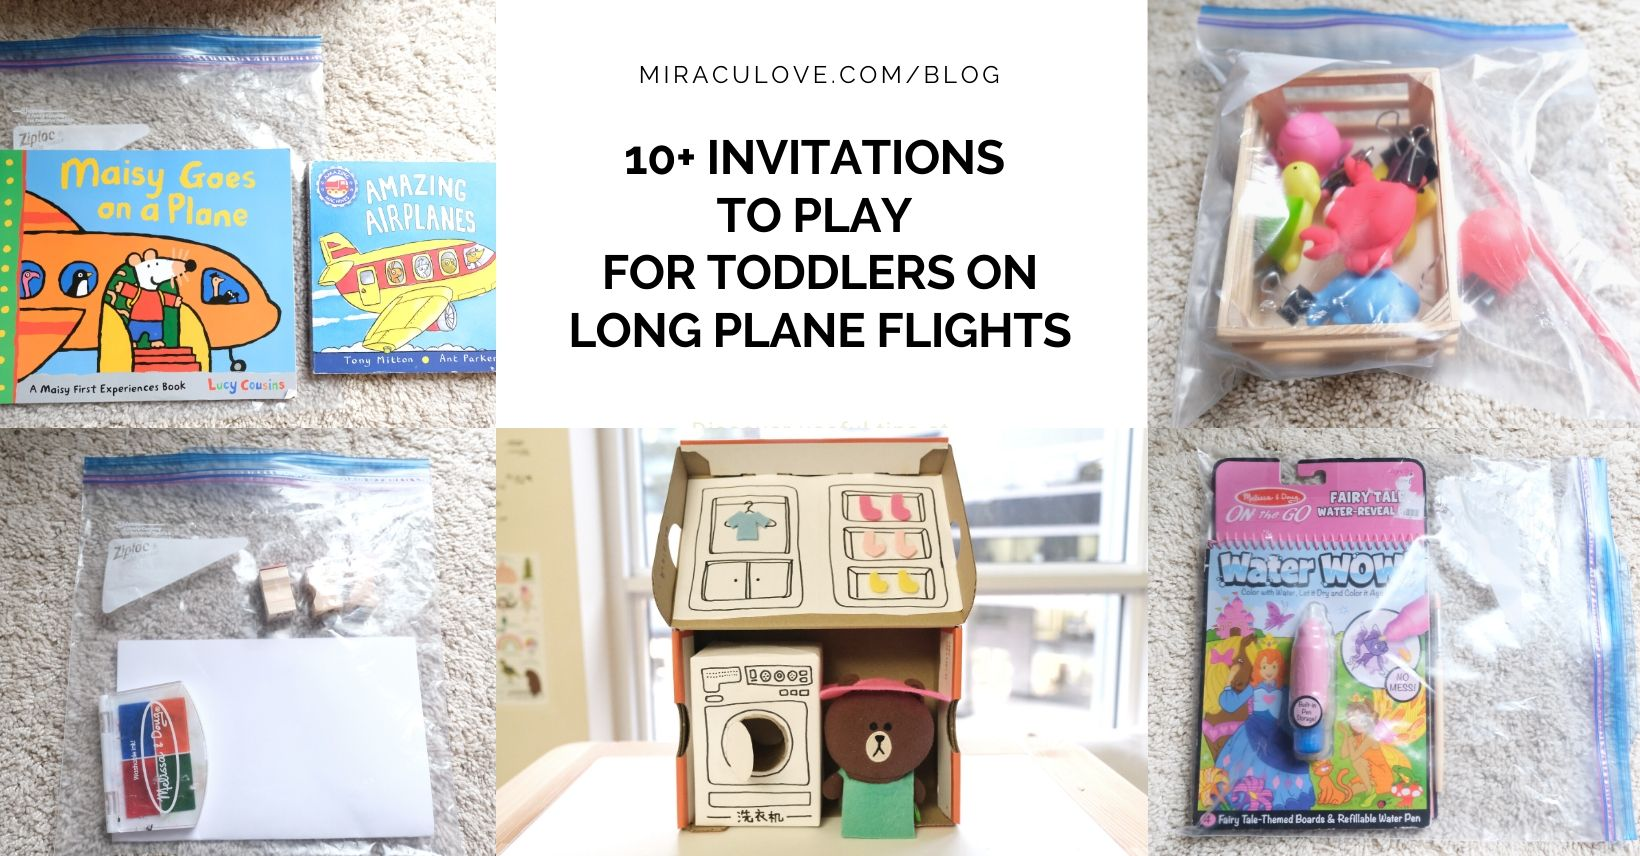 10+ Invitations to Play for Toddlers on Long Plane Flights